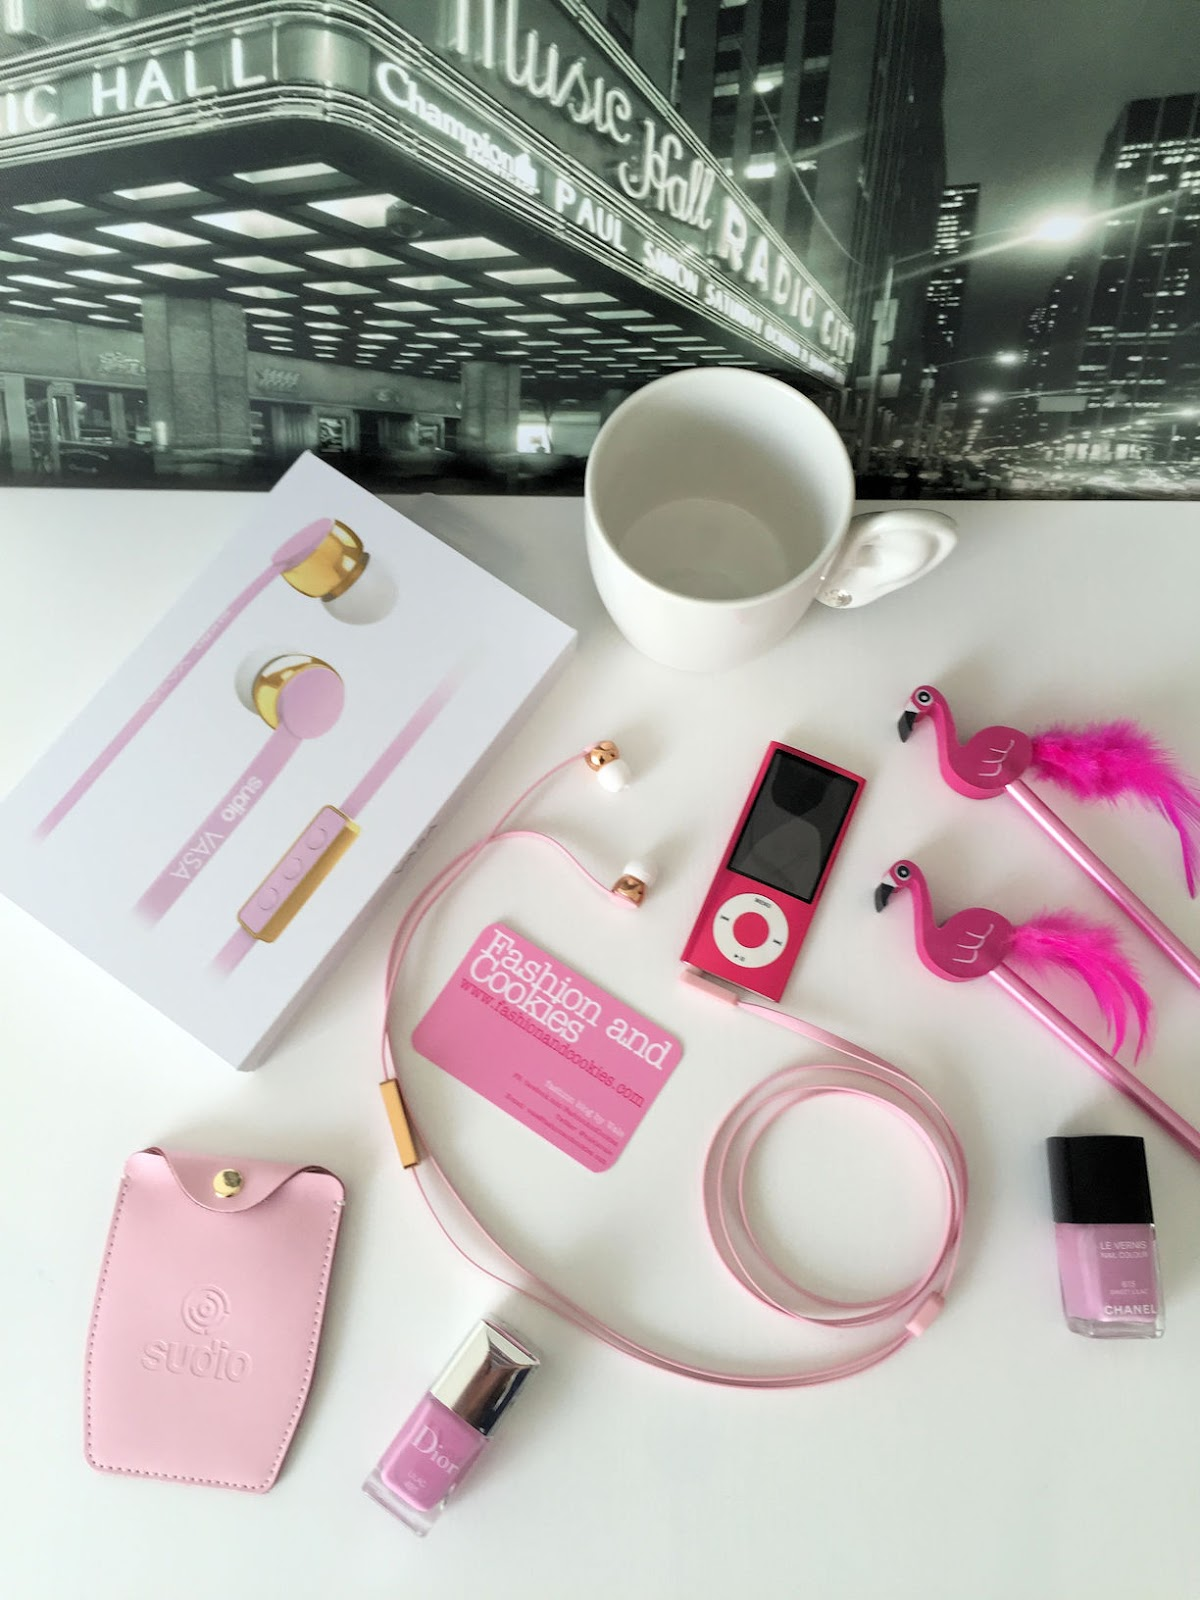 Sudio Sweden Vasa Earphones review on Fashion and Cookies fashion blog, fashion blogger style